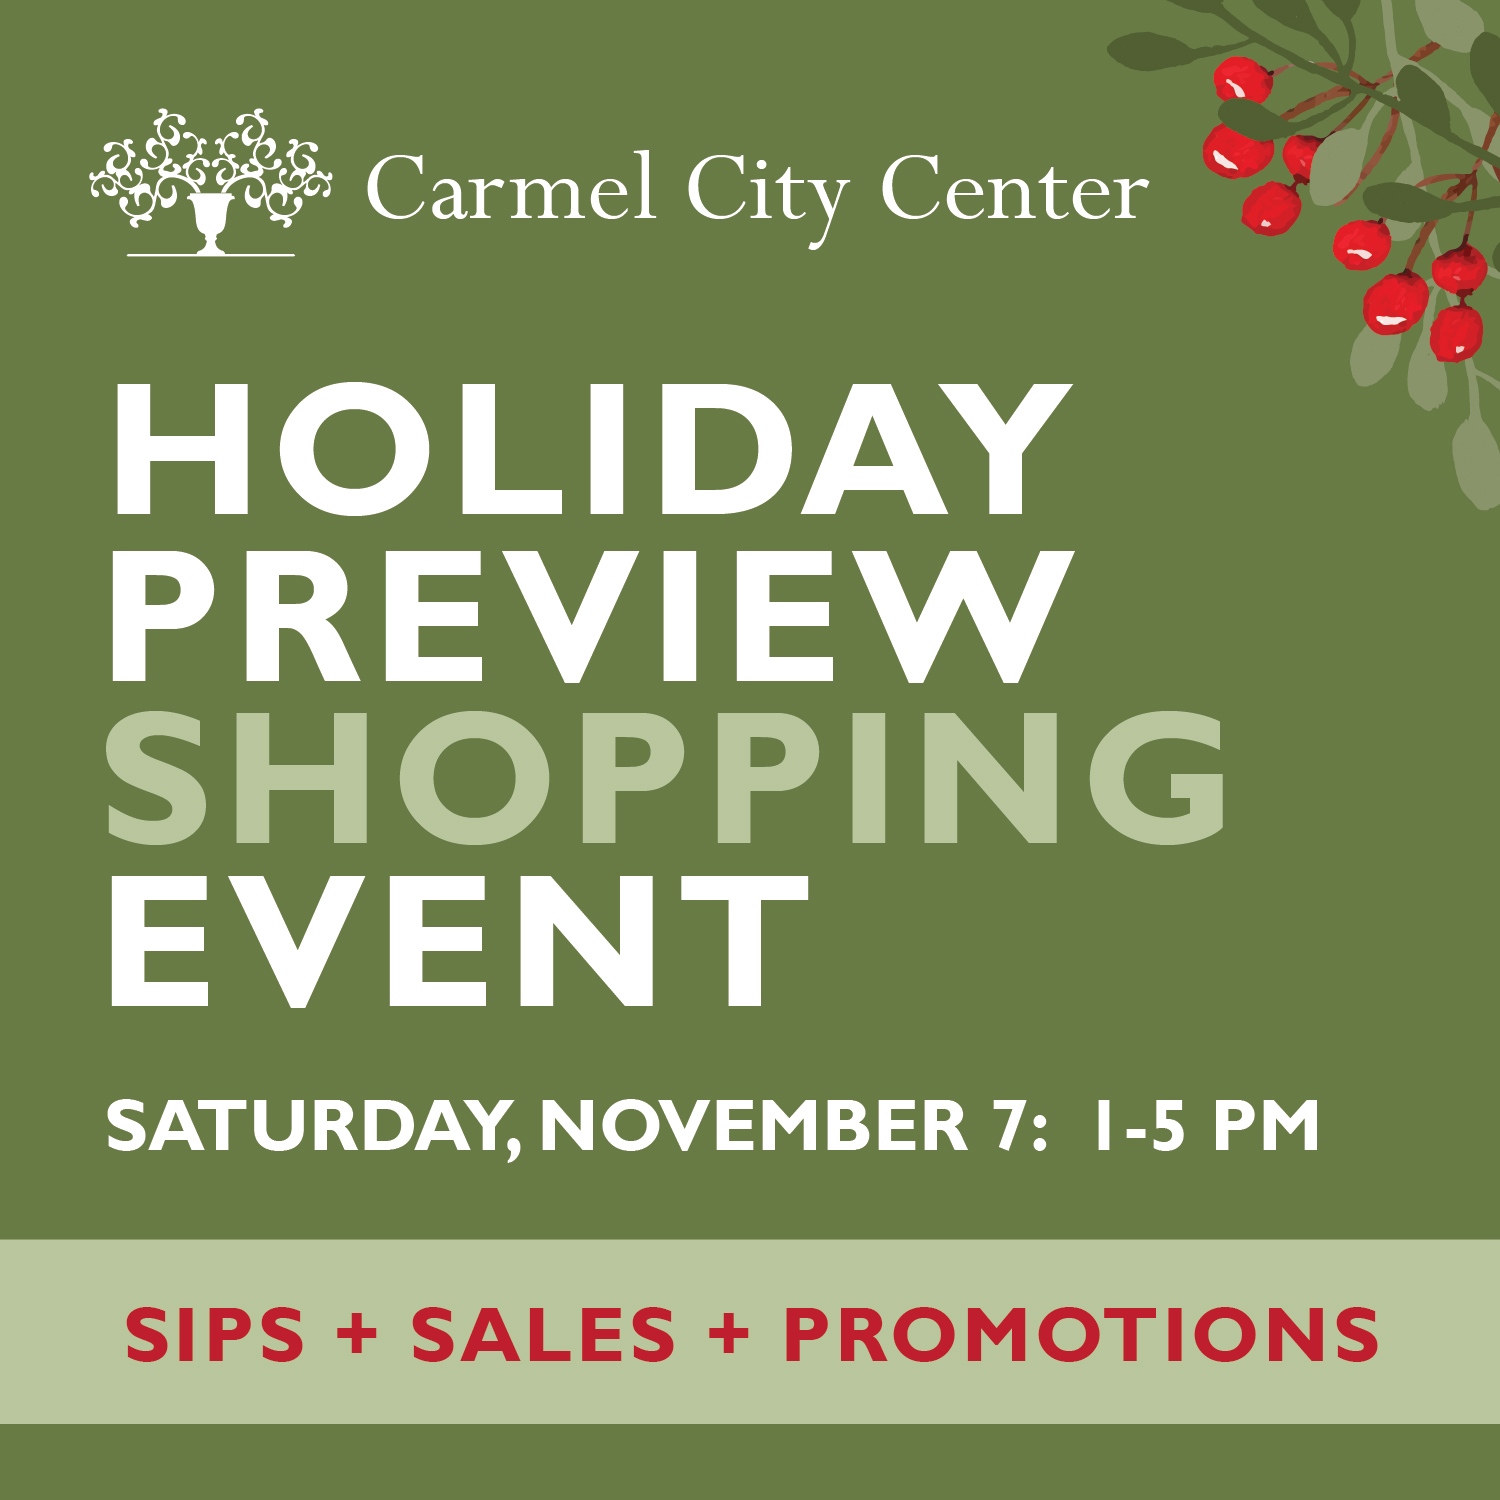 Holiday Preview Shopping Event